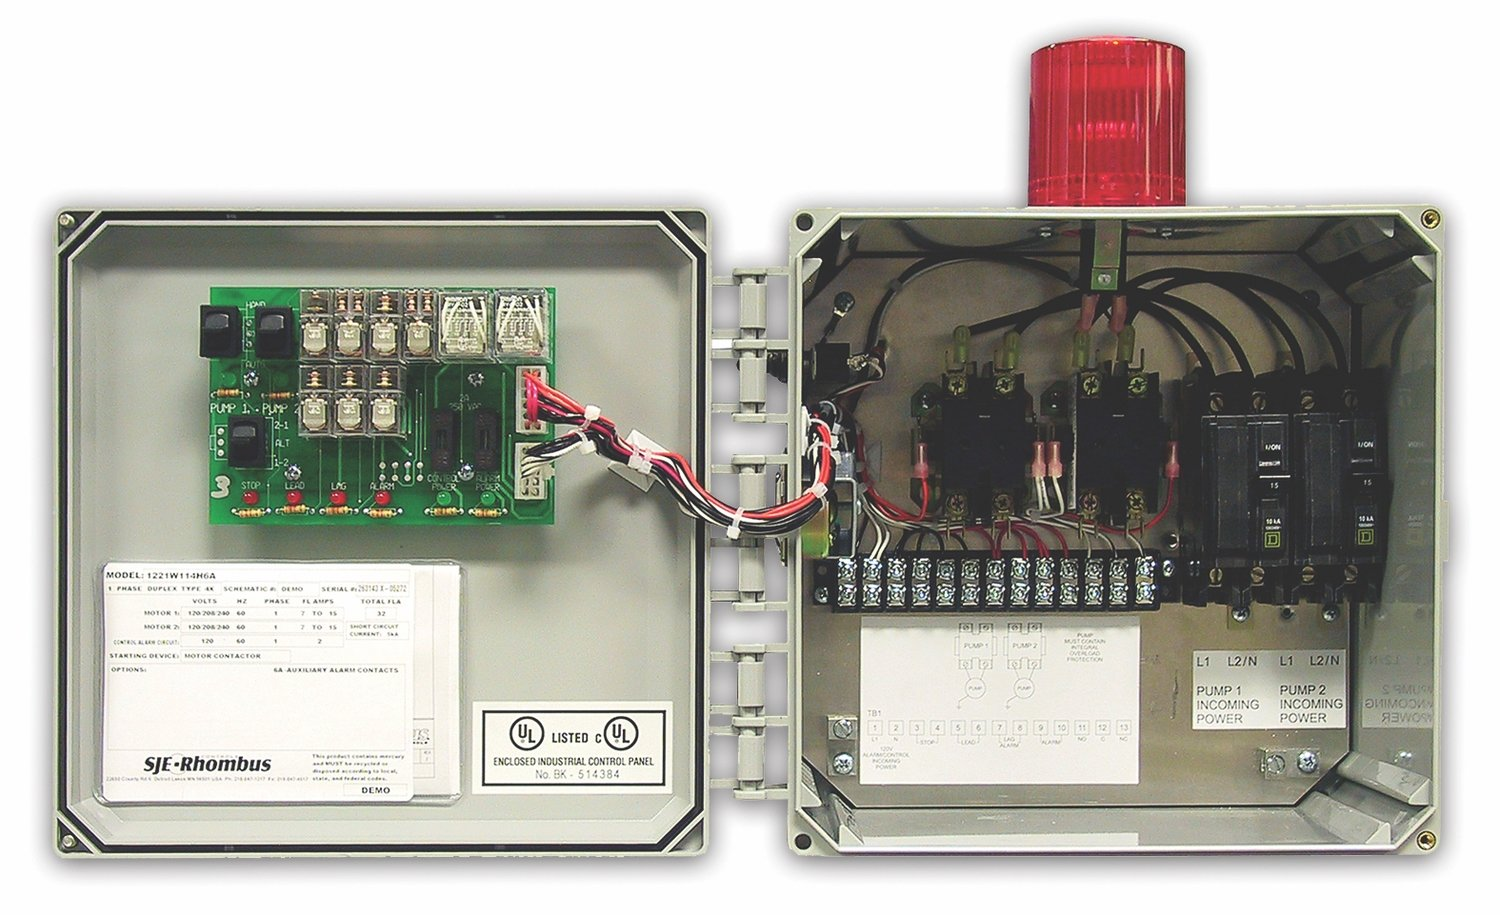 MODEL 122 SINGLE PHASE DUPLEX